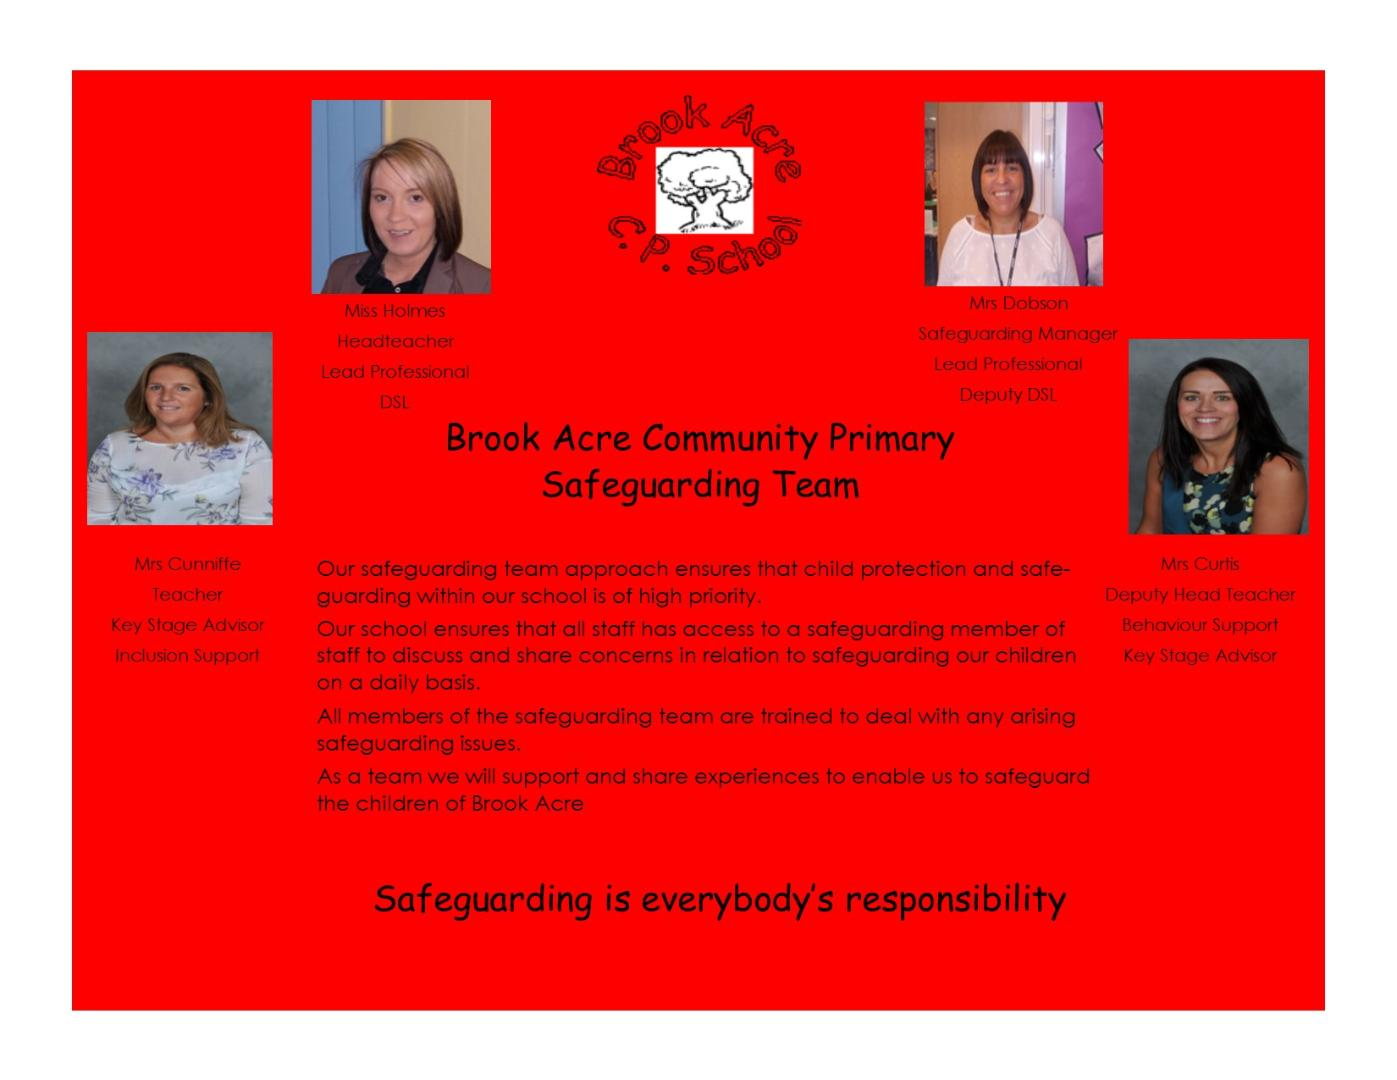 Safeguarding Team poster